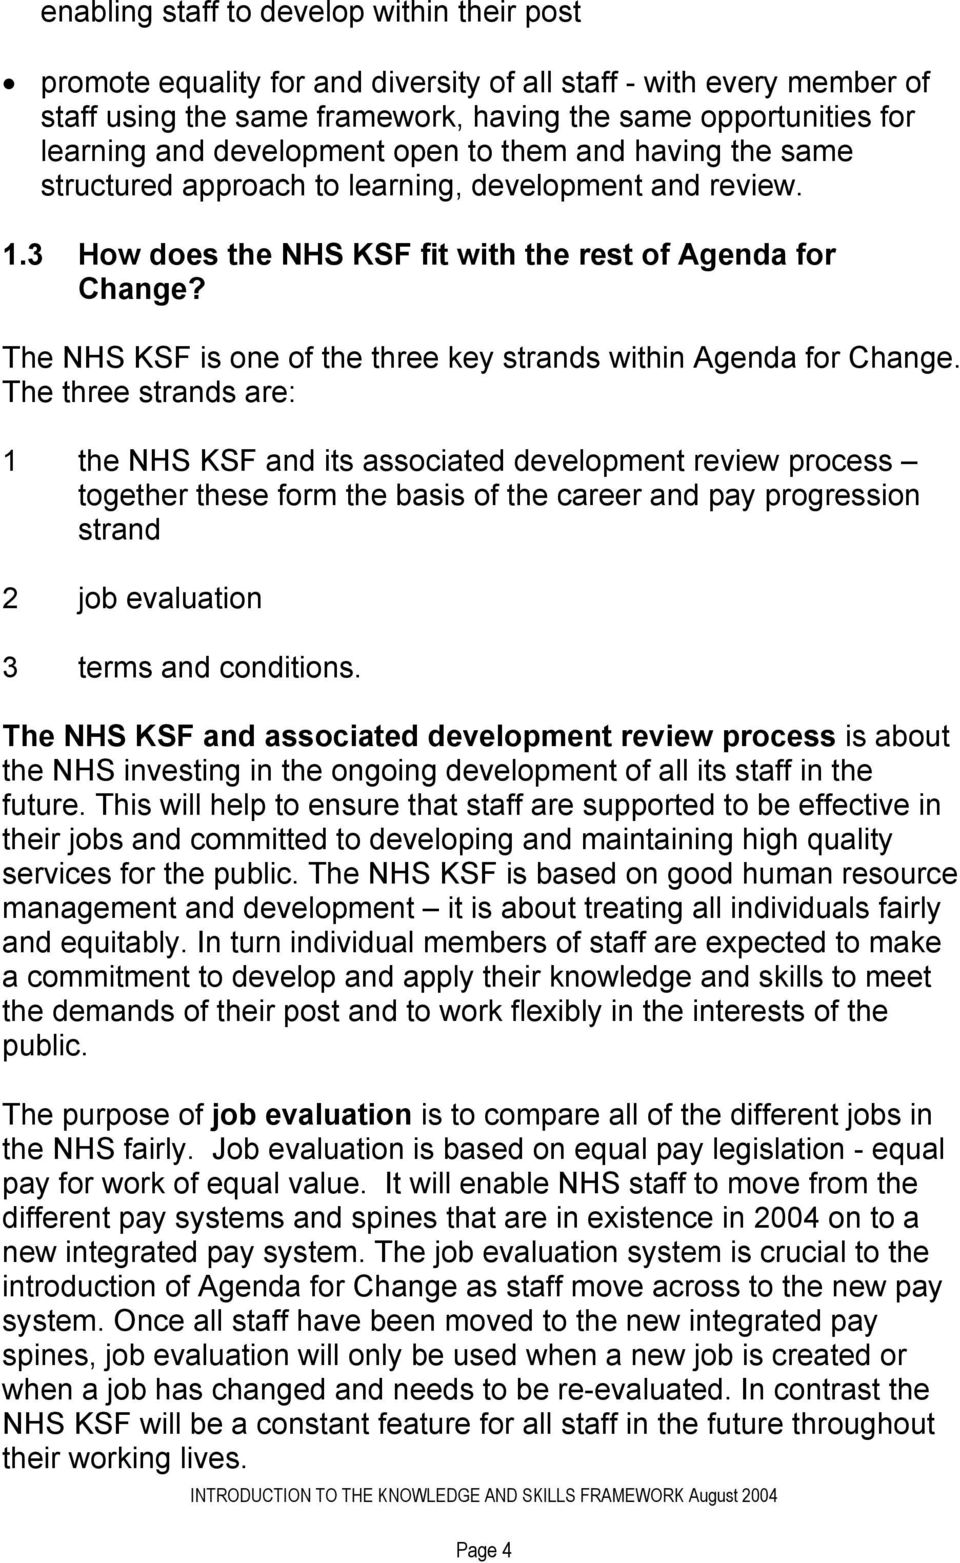 The NHS KSF is one of the three key strands within Agenda for Change.